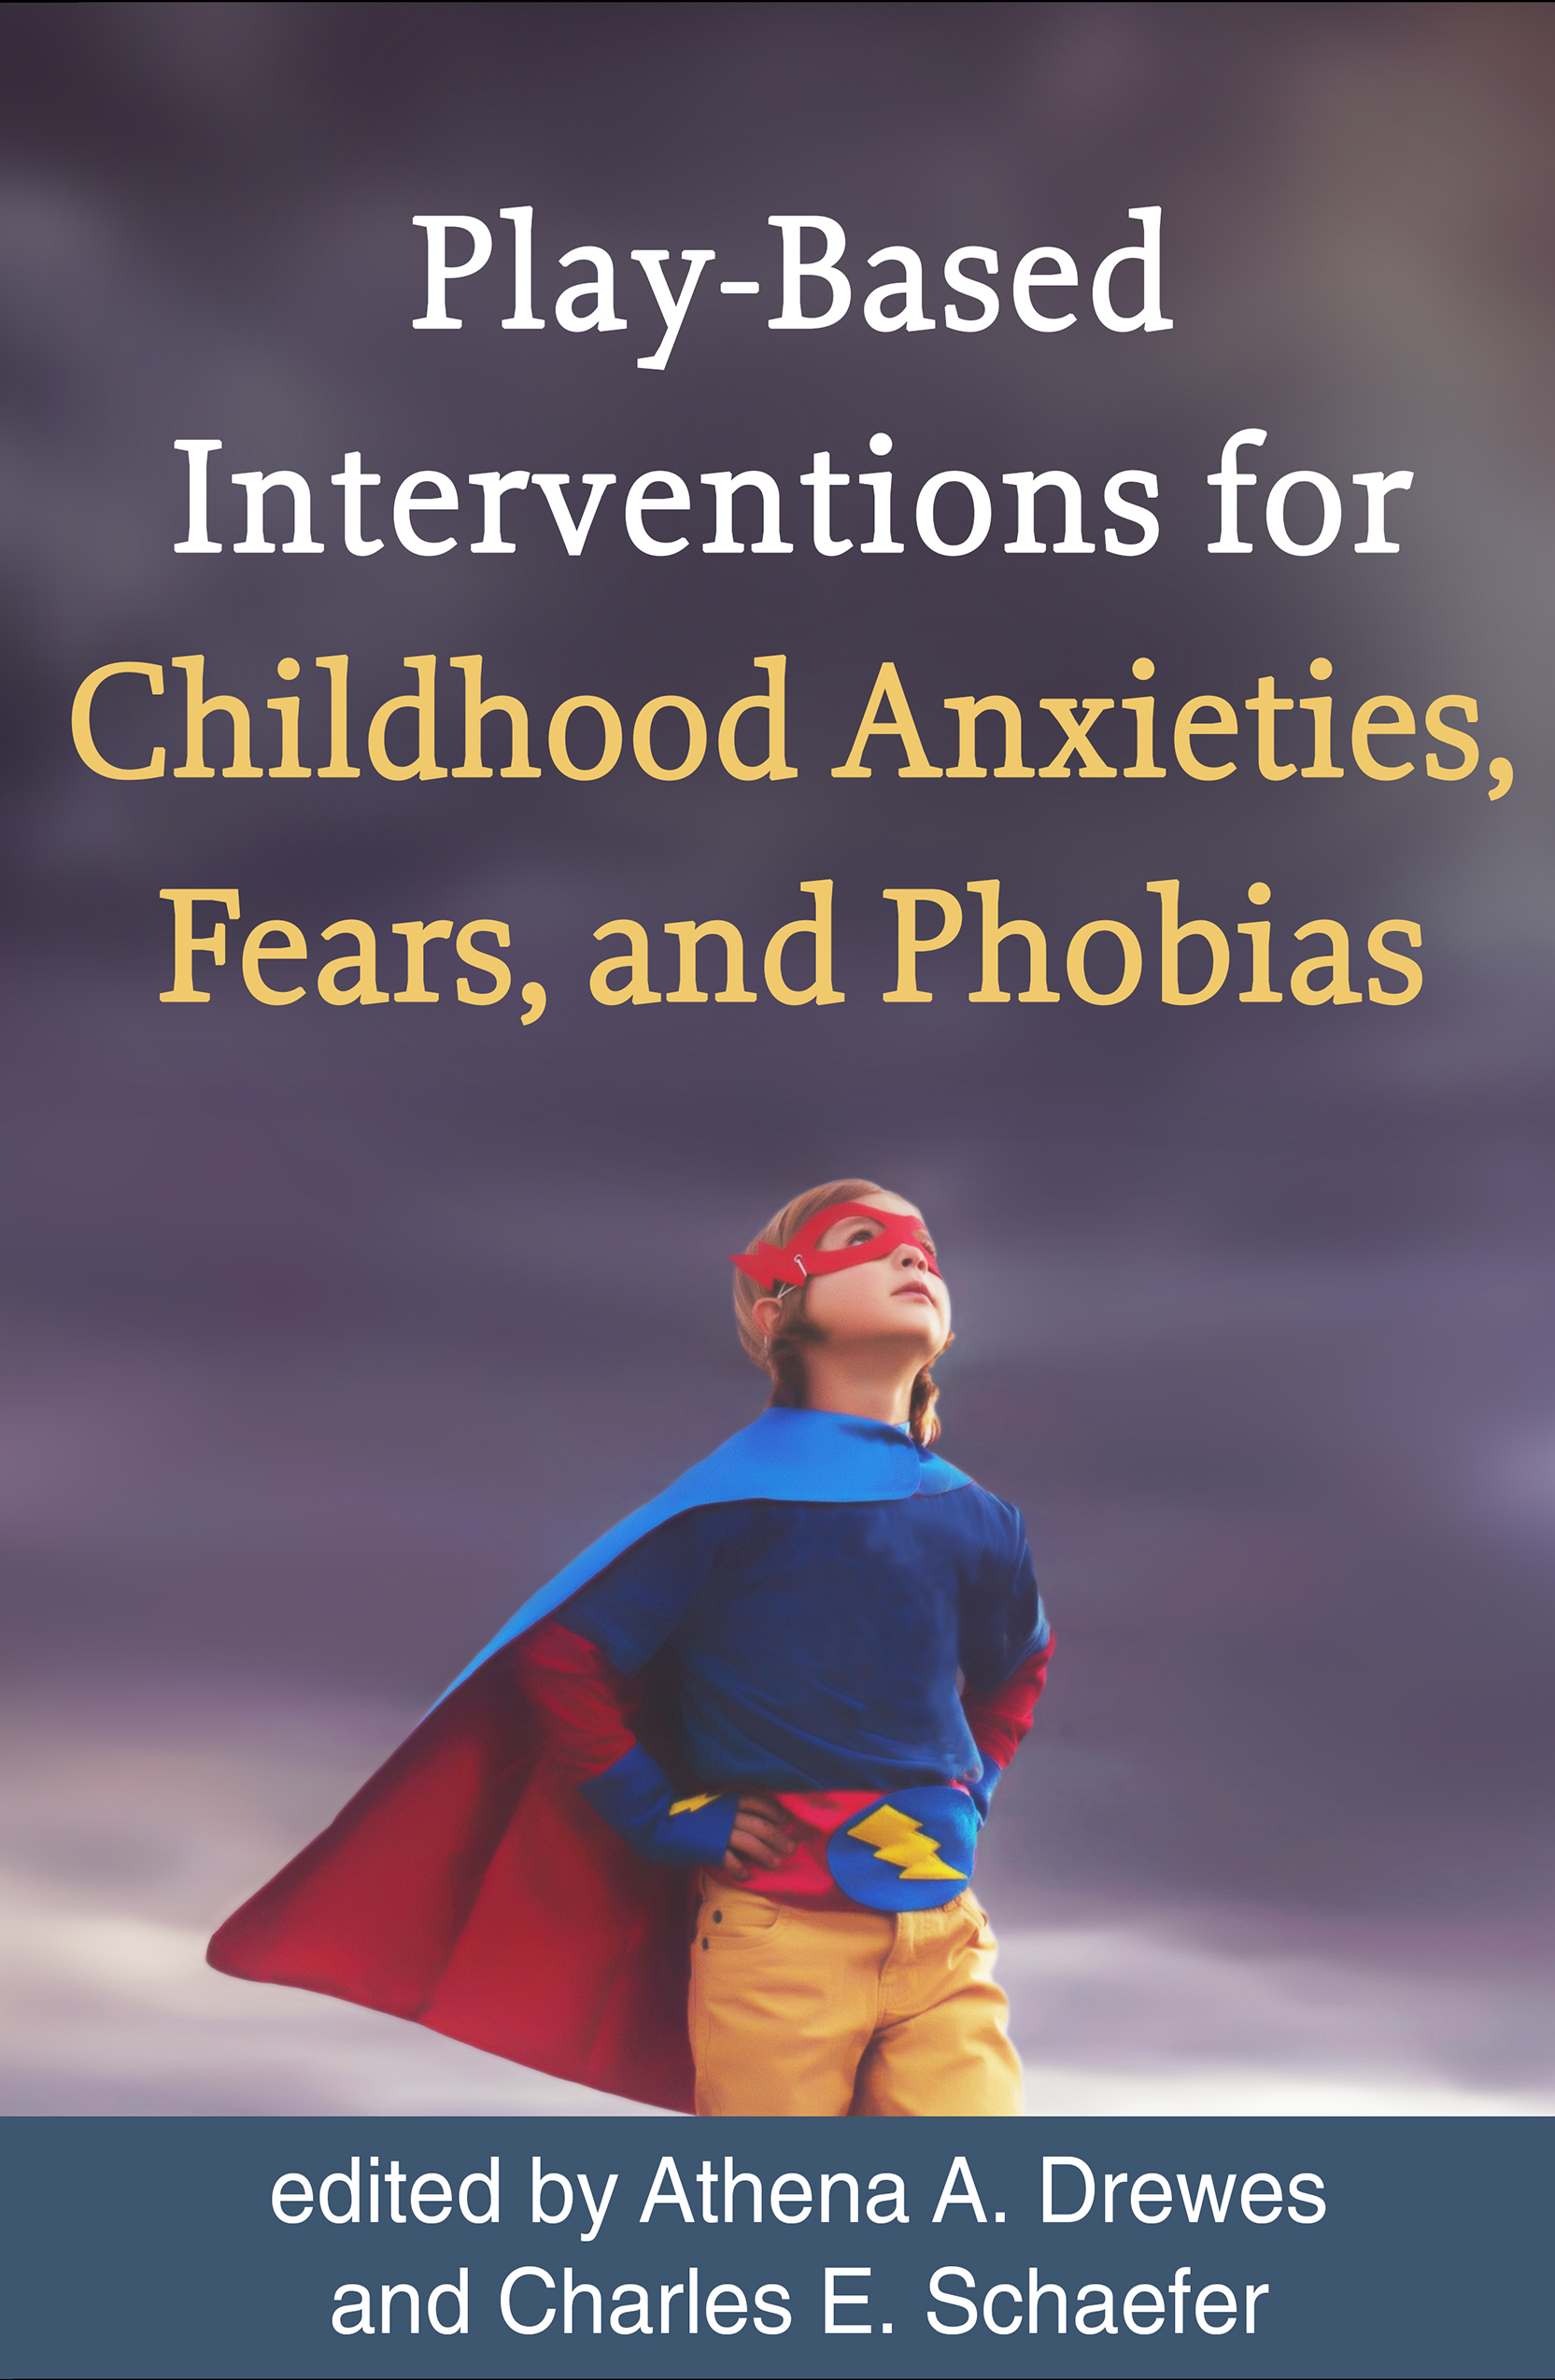 Play-Based Interventions for Childhood Anxieties, Fears, and Phobias book cover